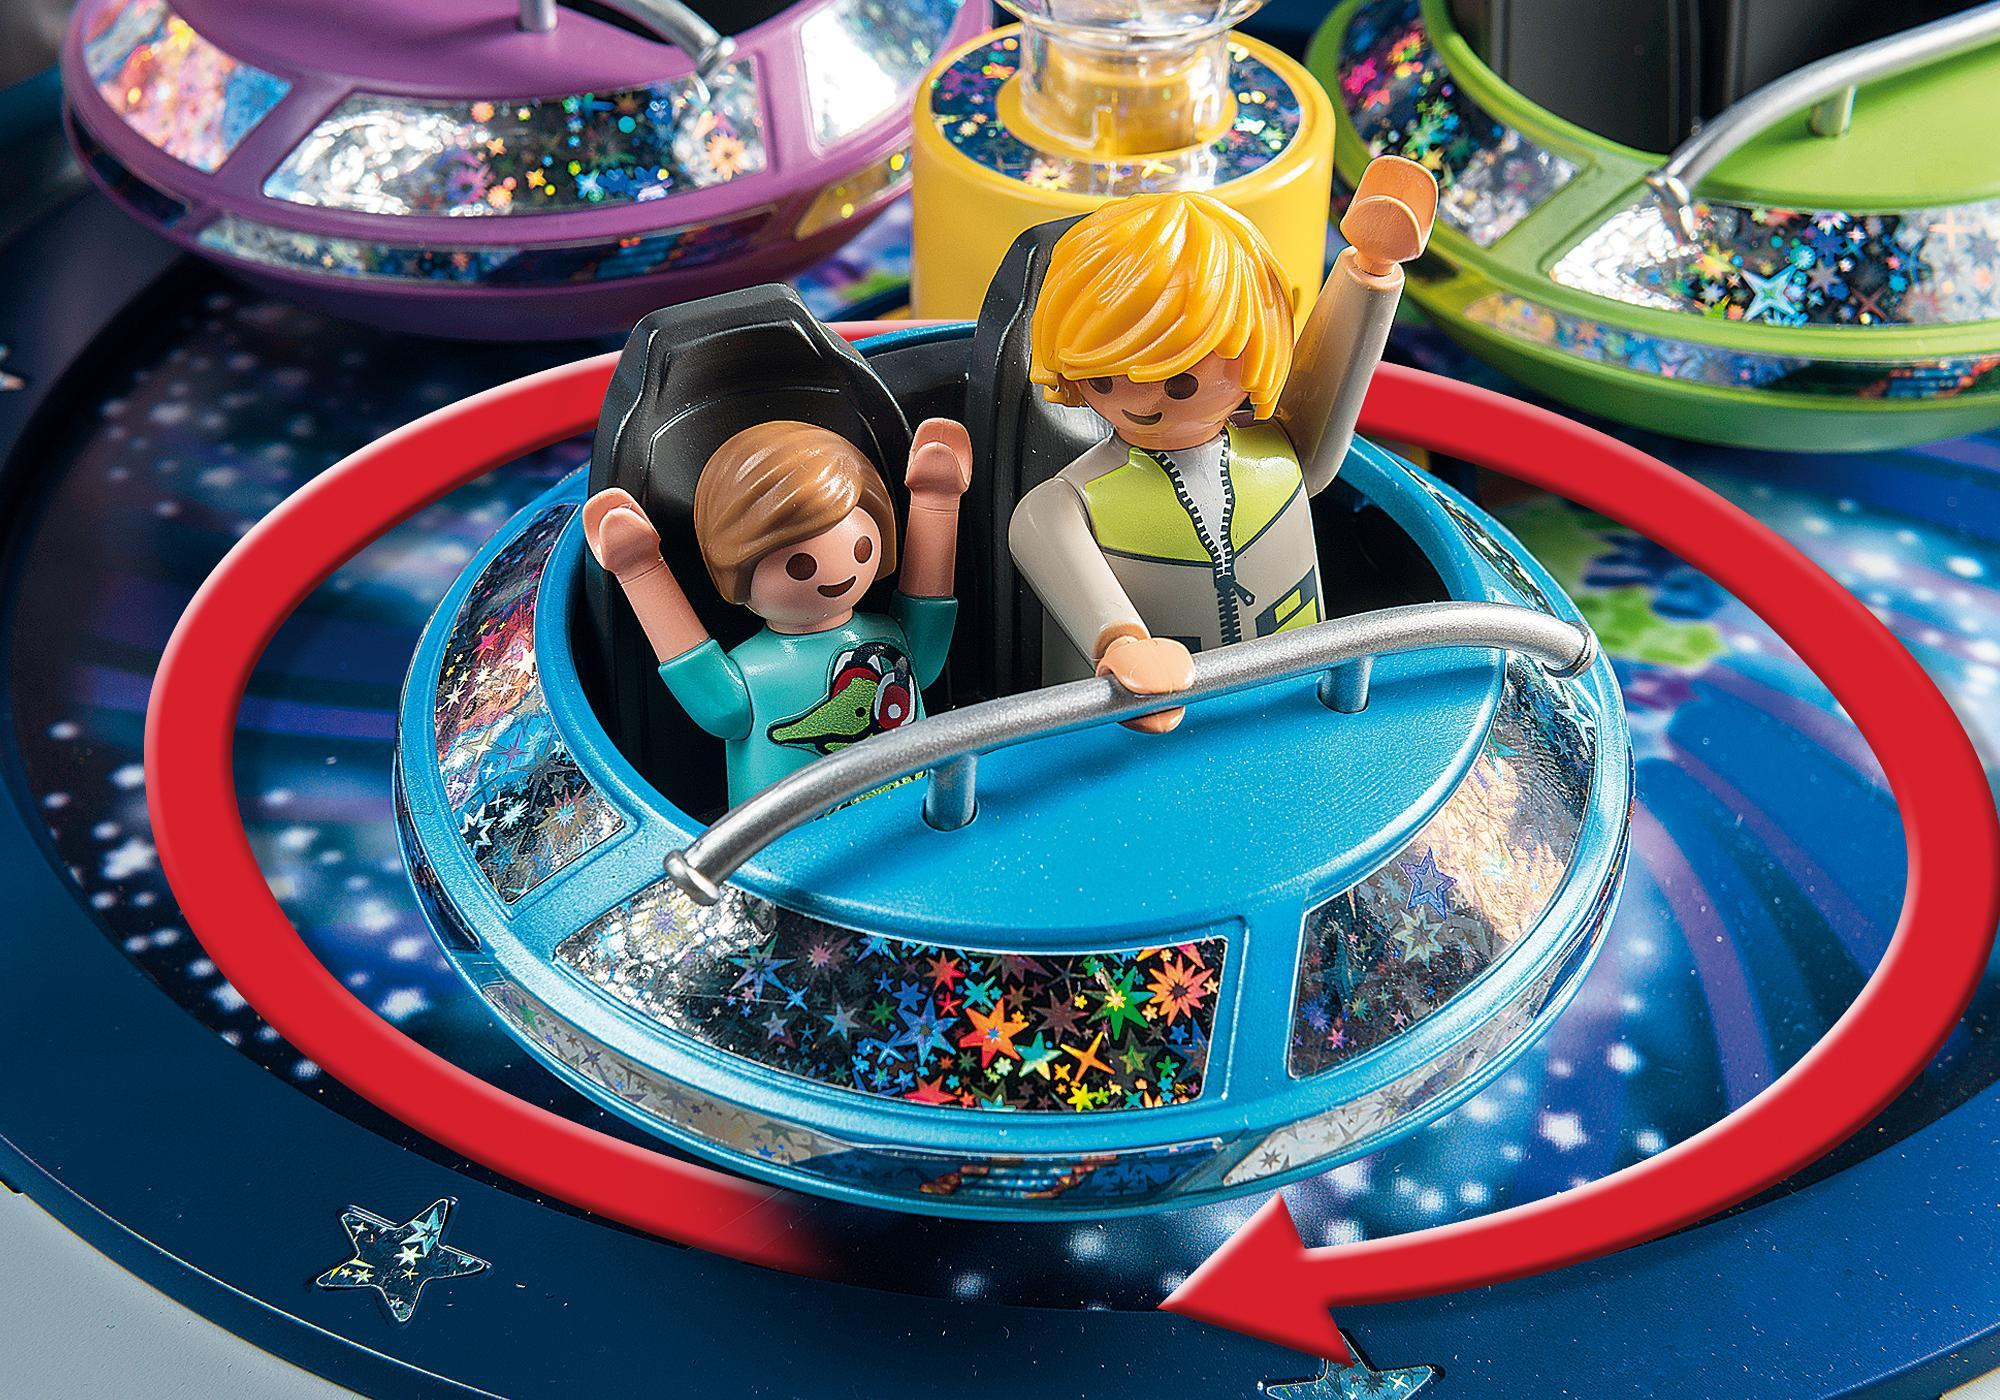 http://media.playmobil.com/i/playmobil/5554_product_extra1/Spinning Spaceship Ride with Lights